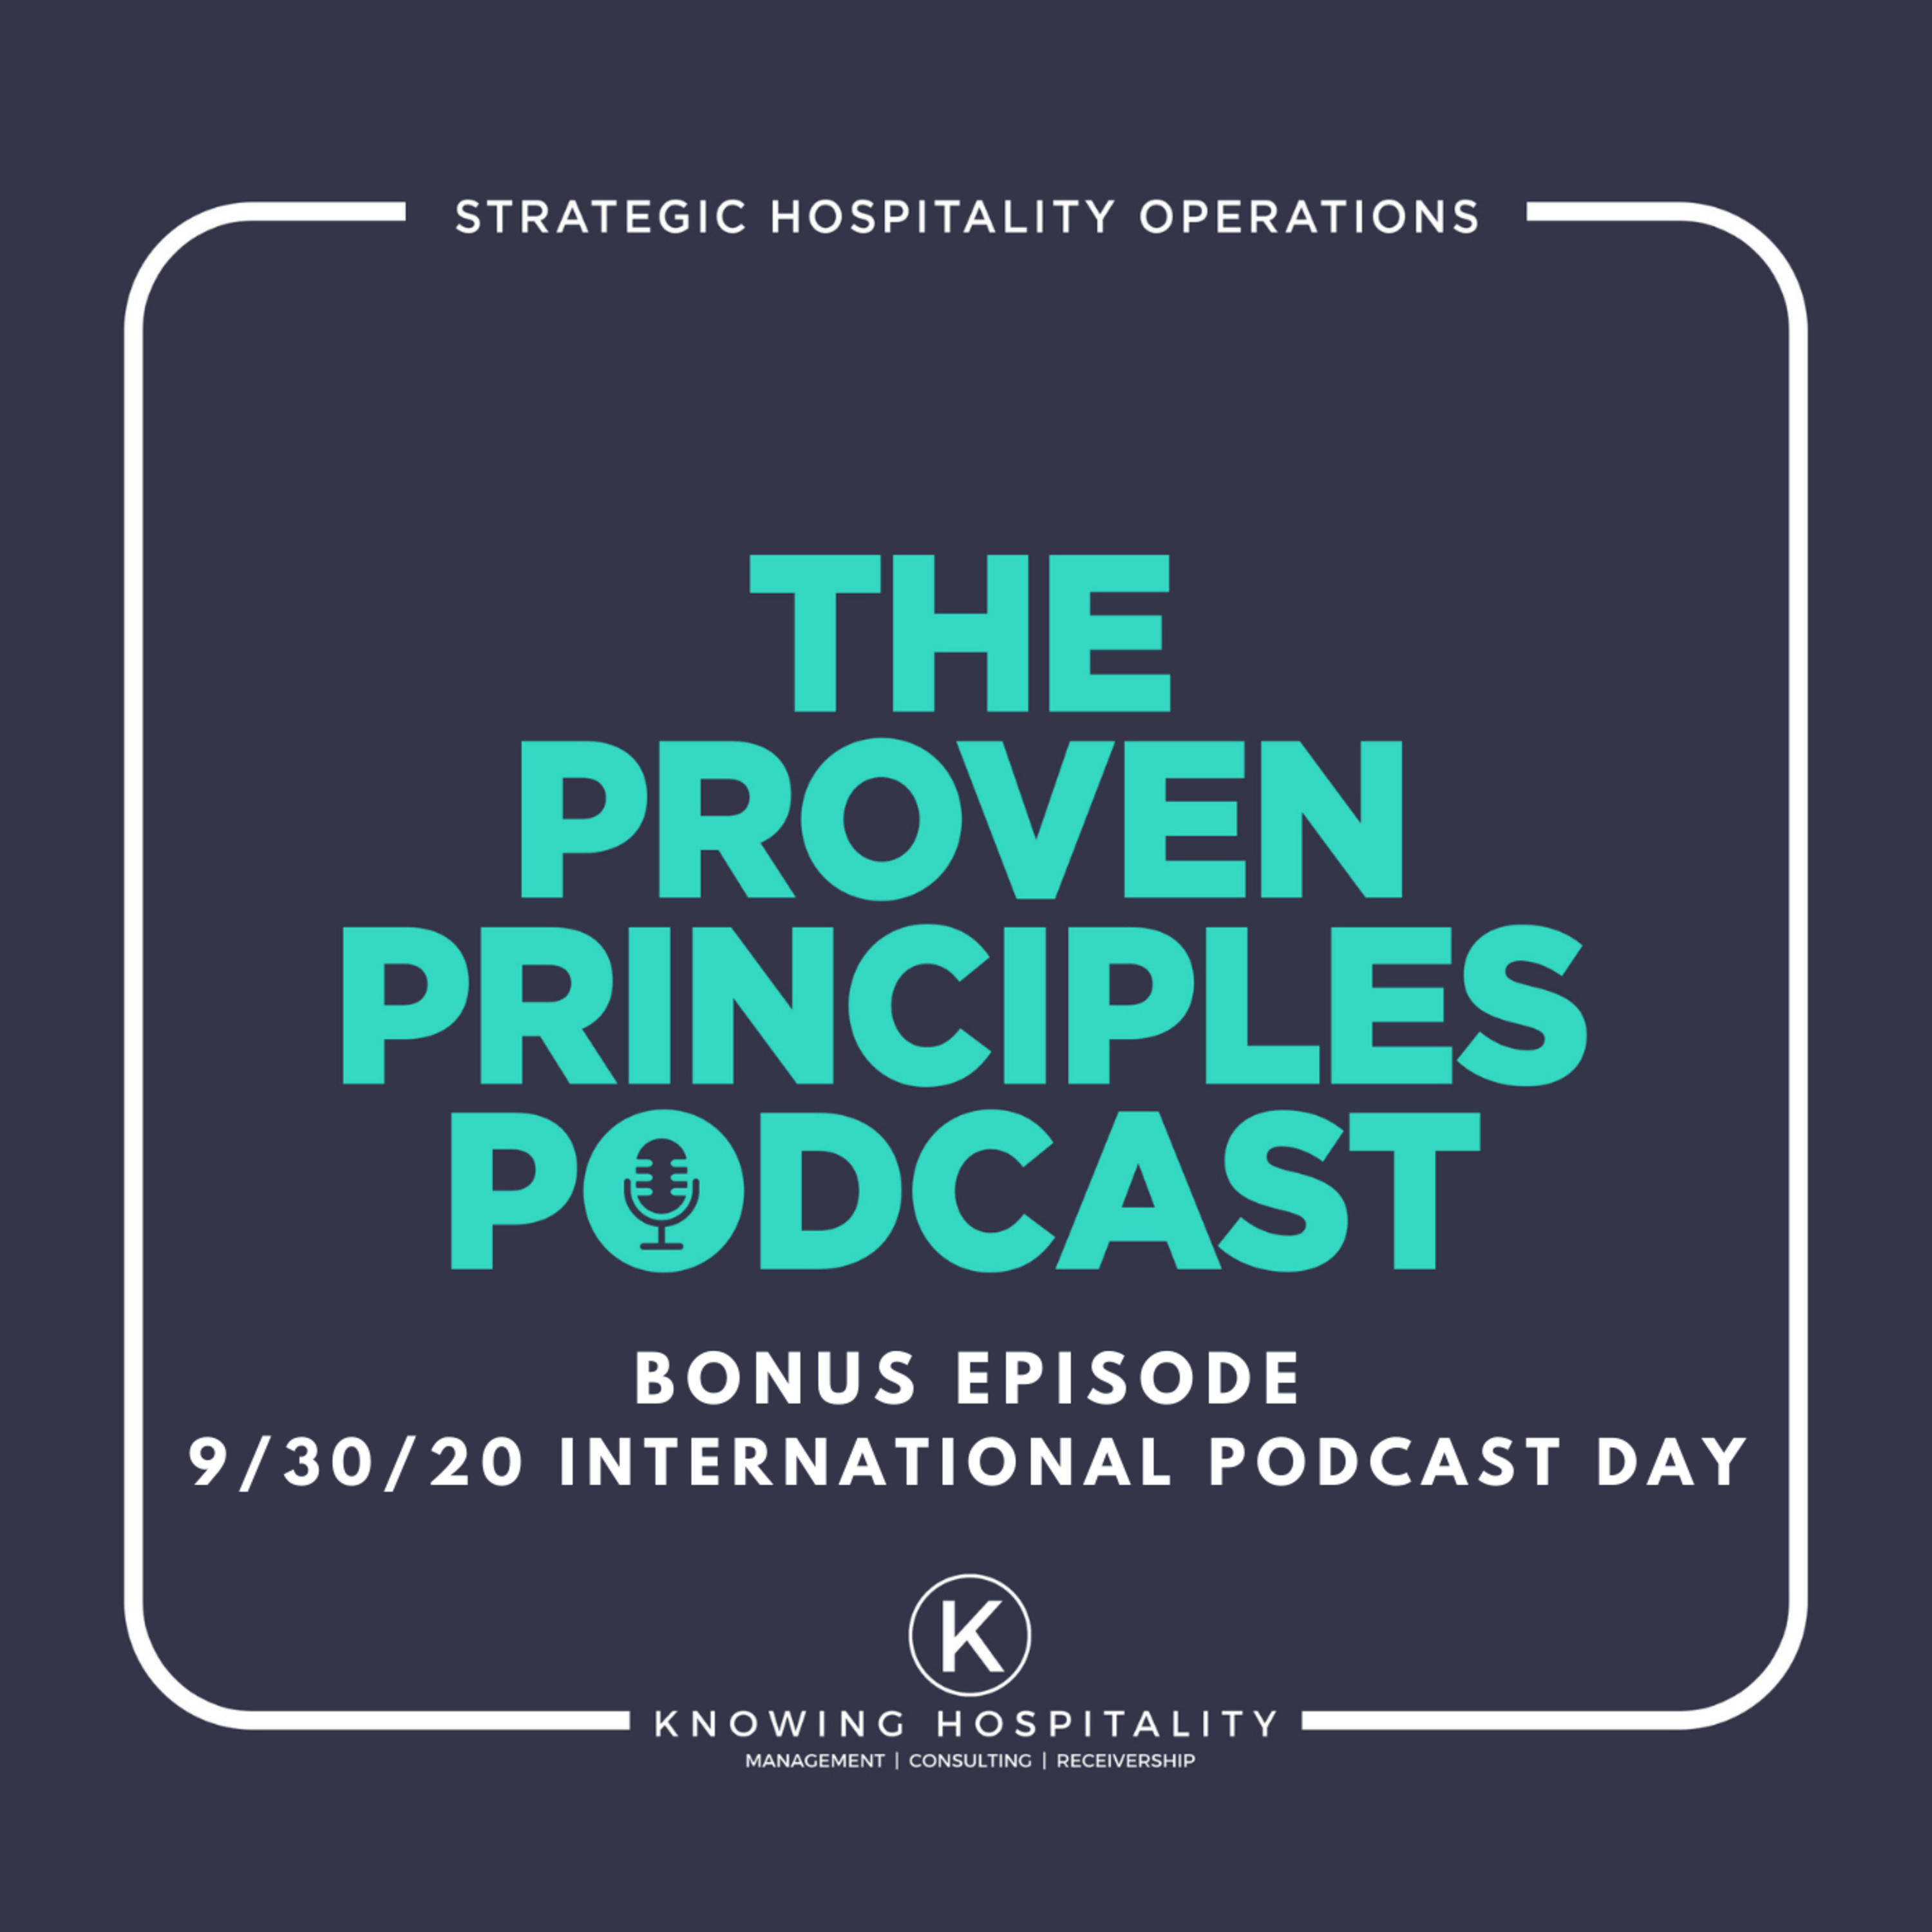 Bonus Episode: International Podcast Day w/ Micheal Tingsager and Wil Slickers